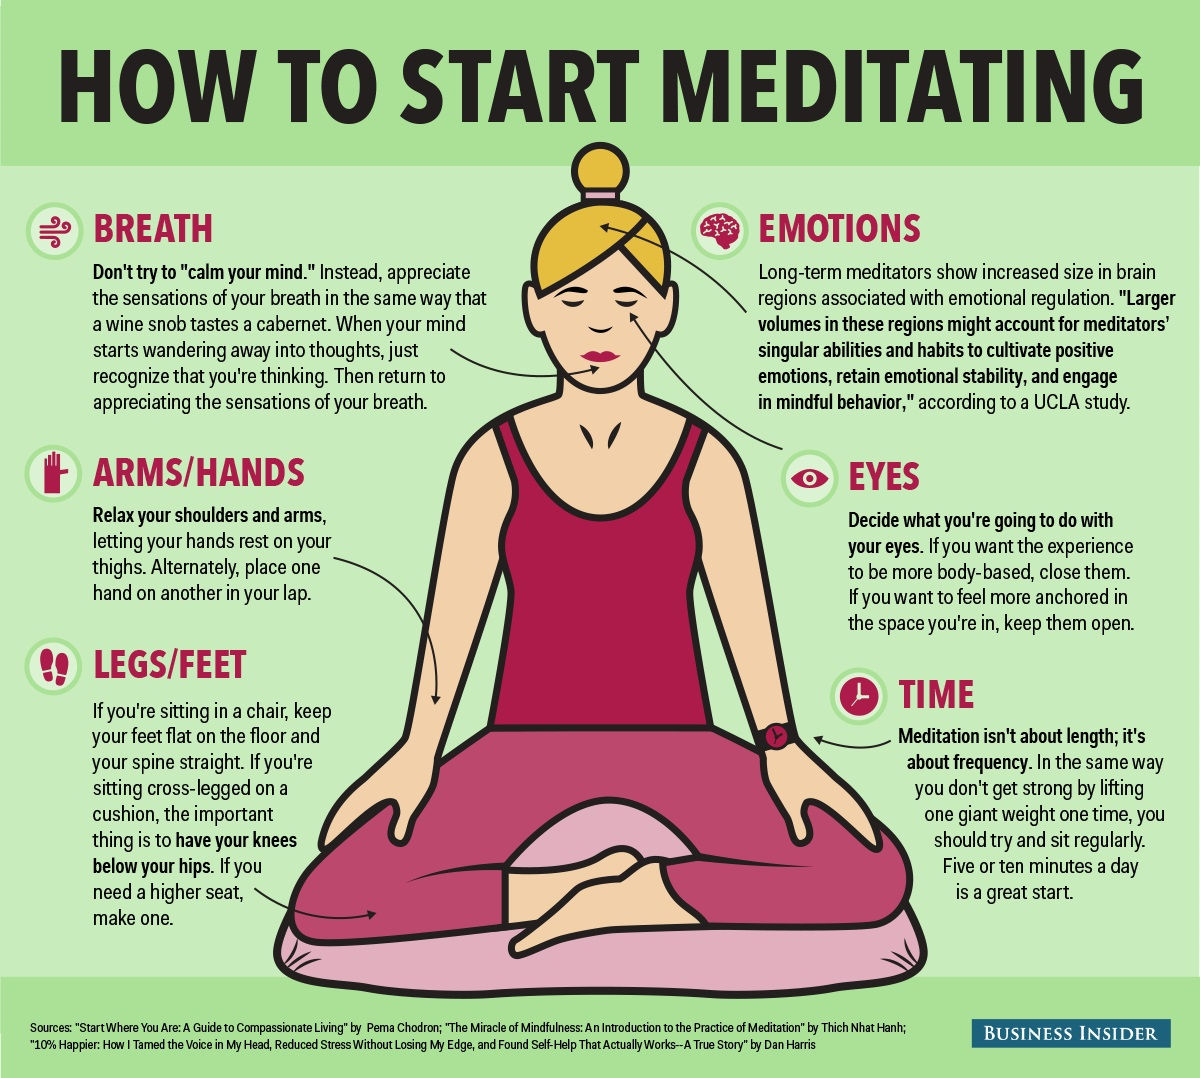 Simple basics of mindfulness meditation